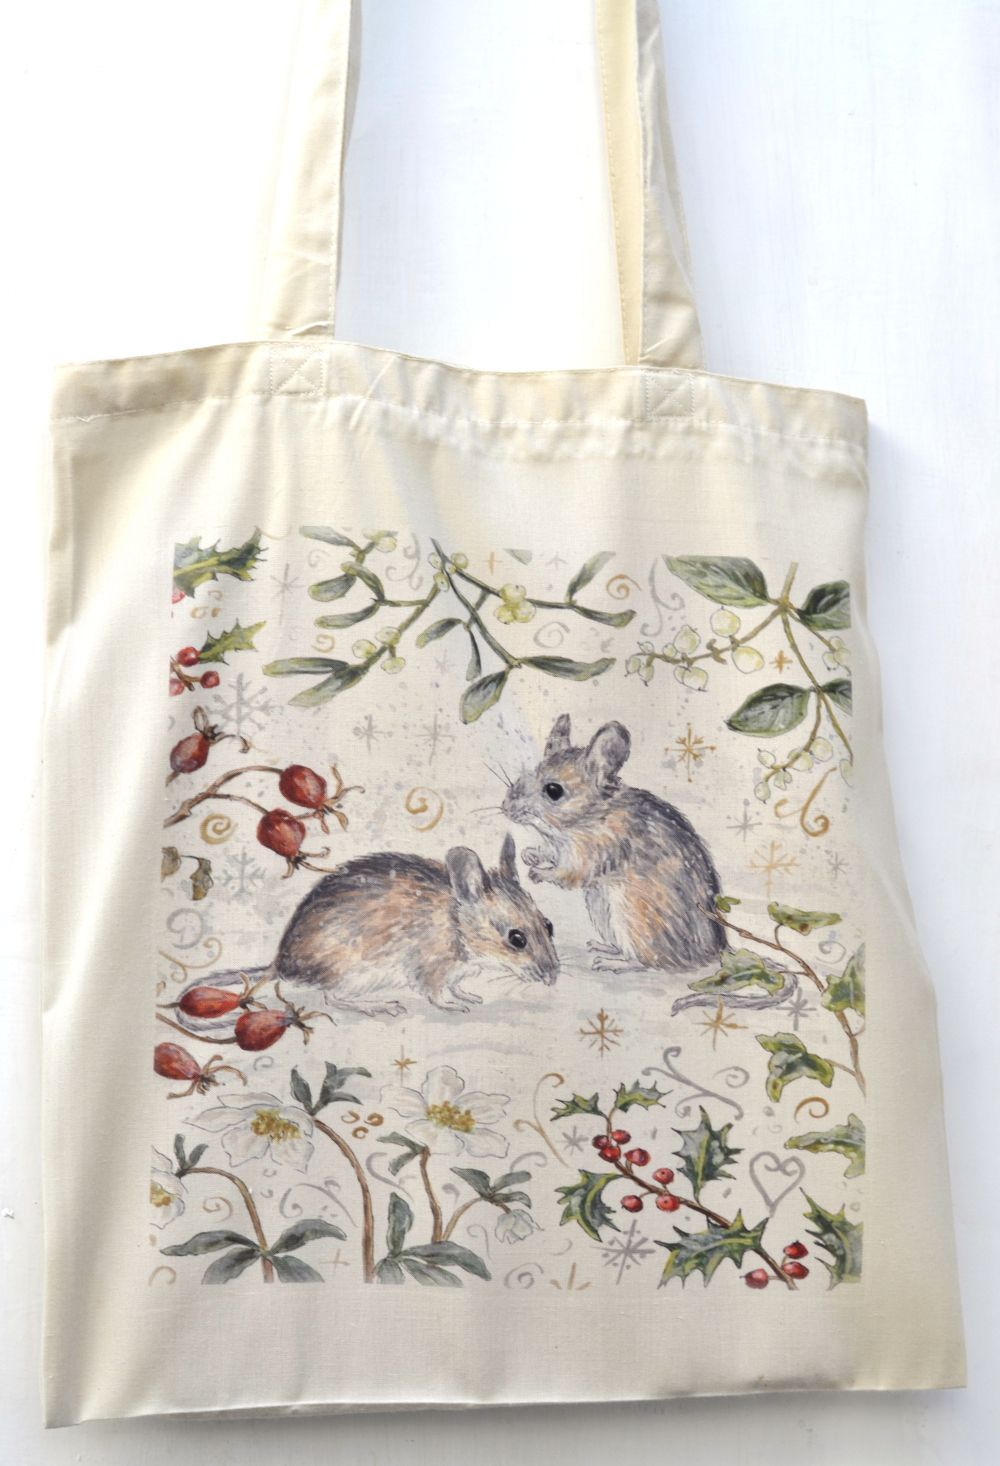 Bag - Winter Berries - Mice